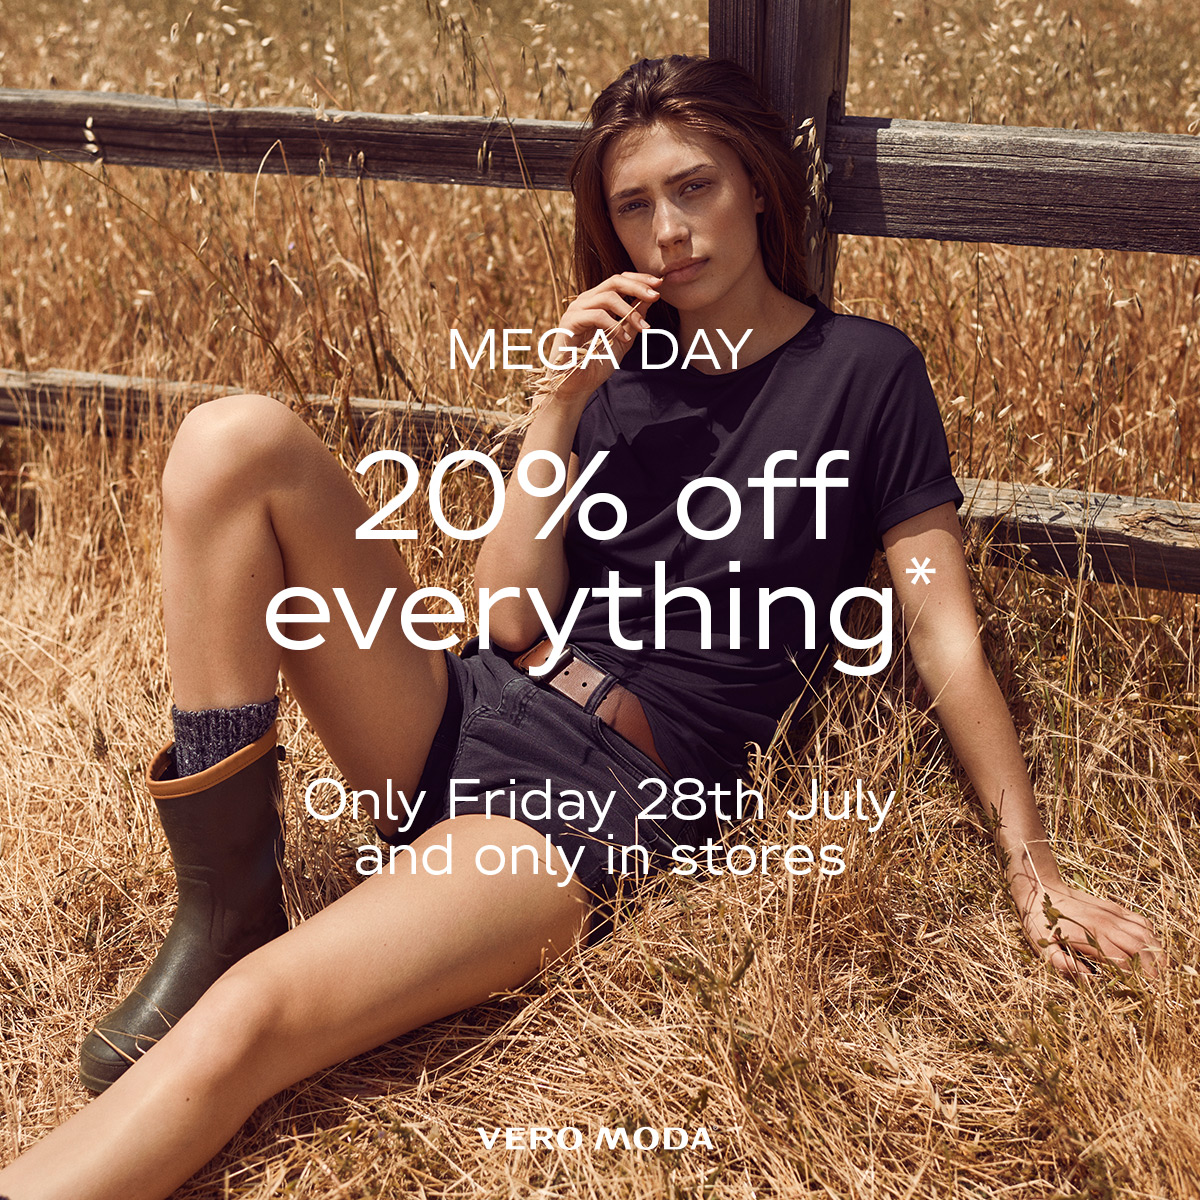 VERO MODA MEGA DAY - 20% OFF TOMORROW 27TH JULY!